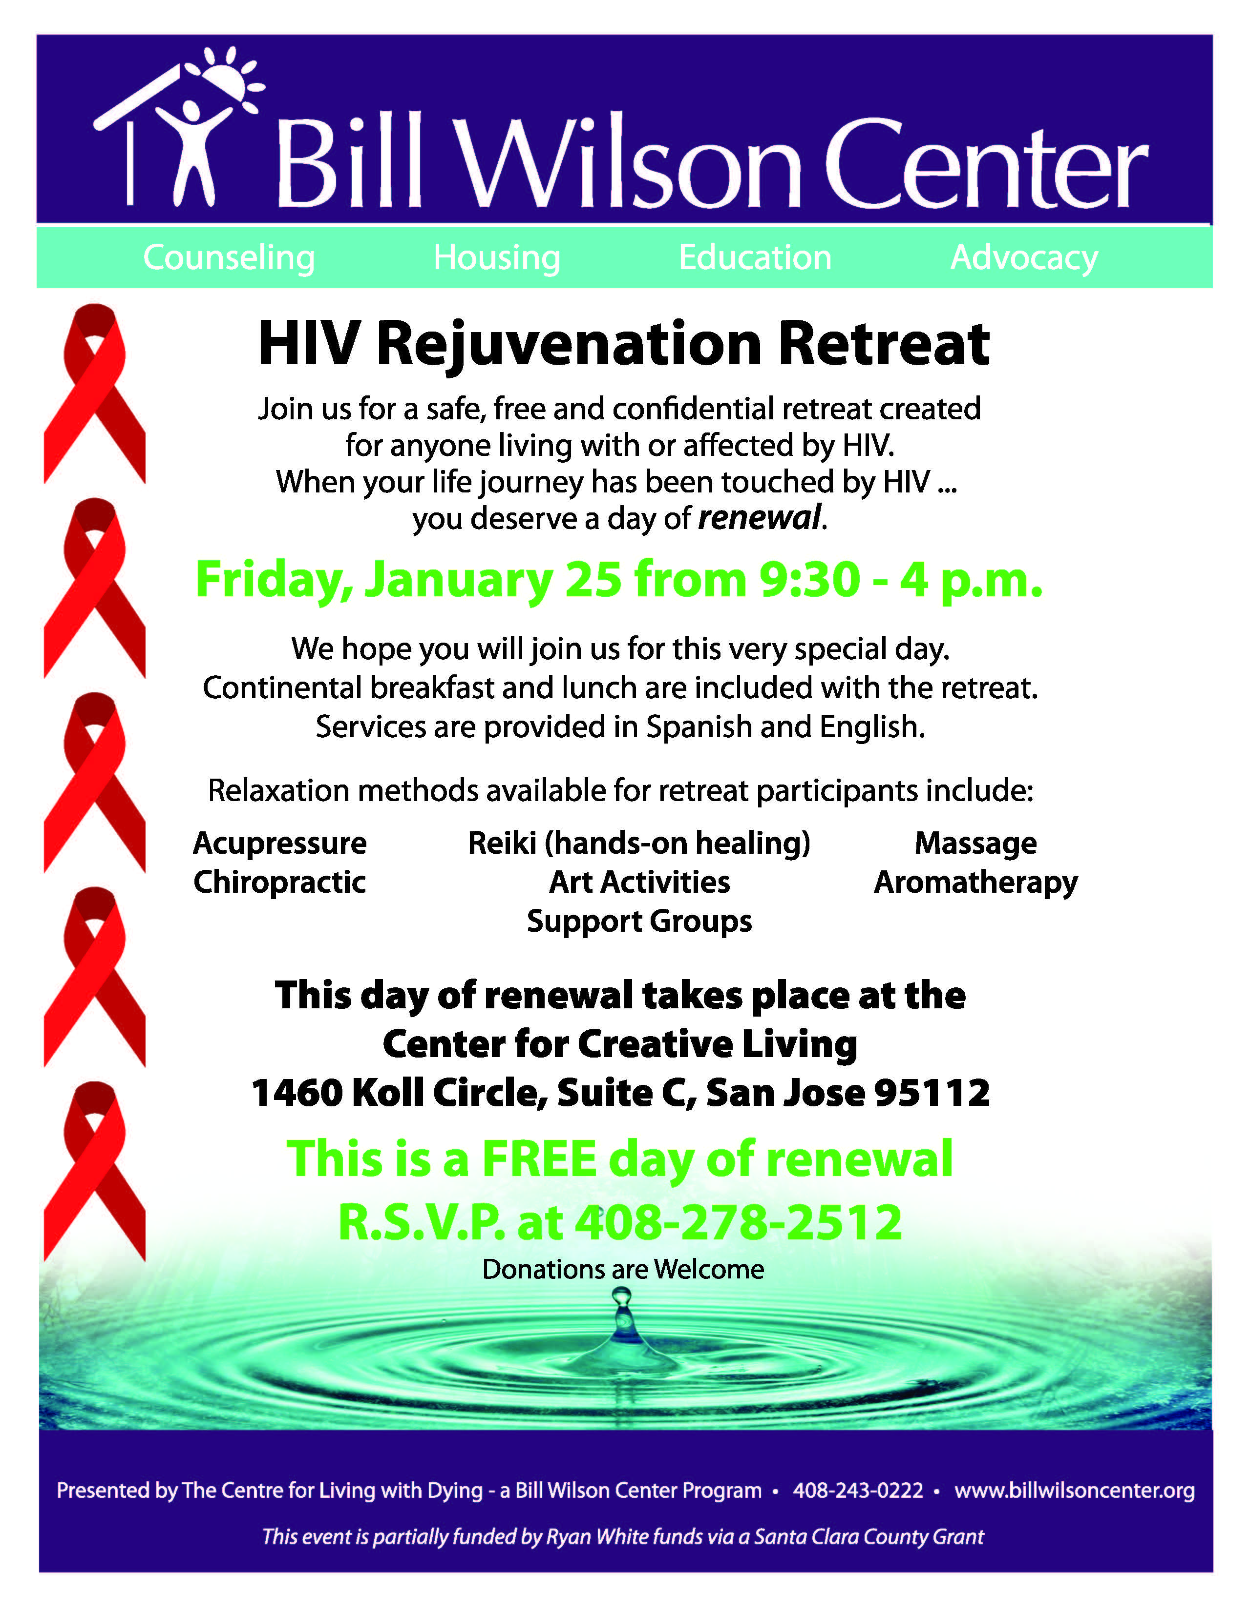 HIV Rejuvenation Retreat